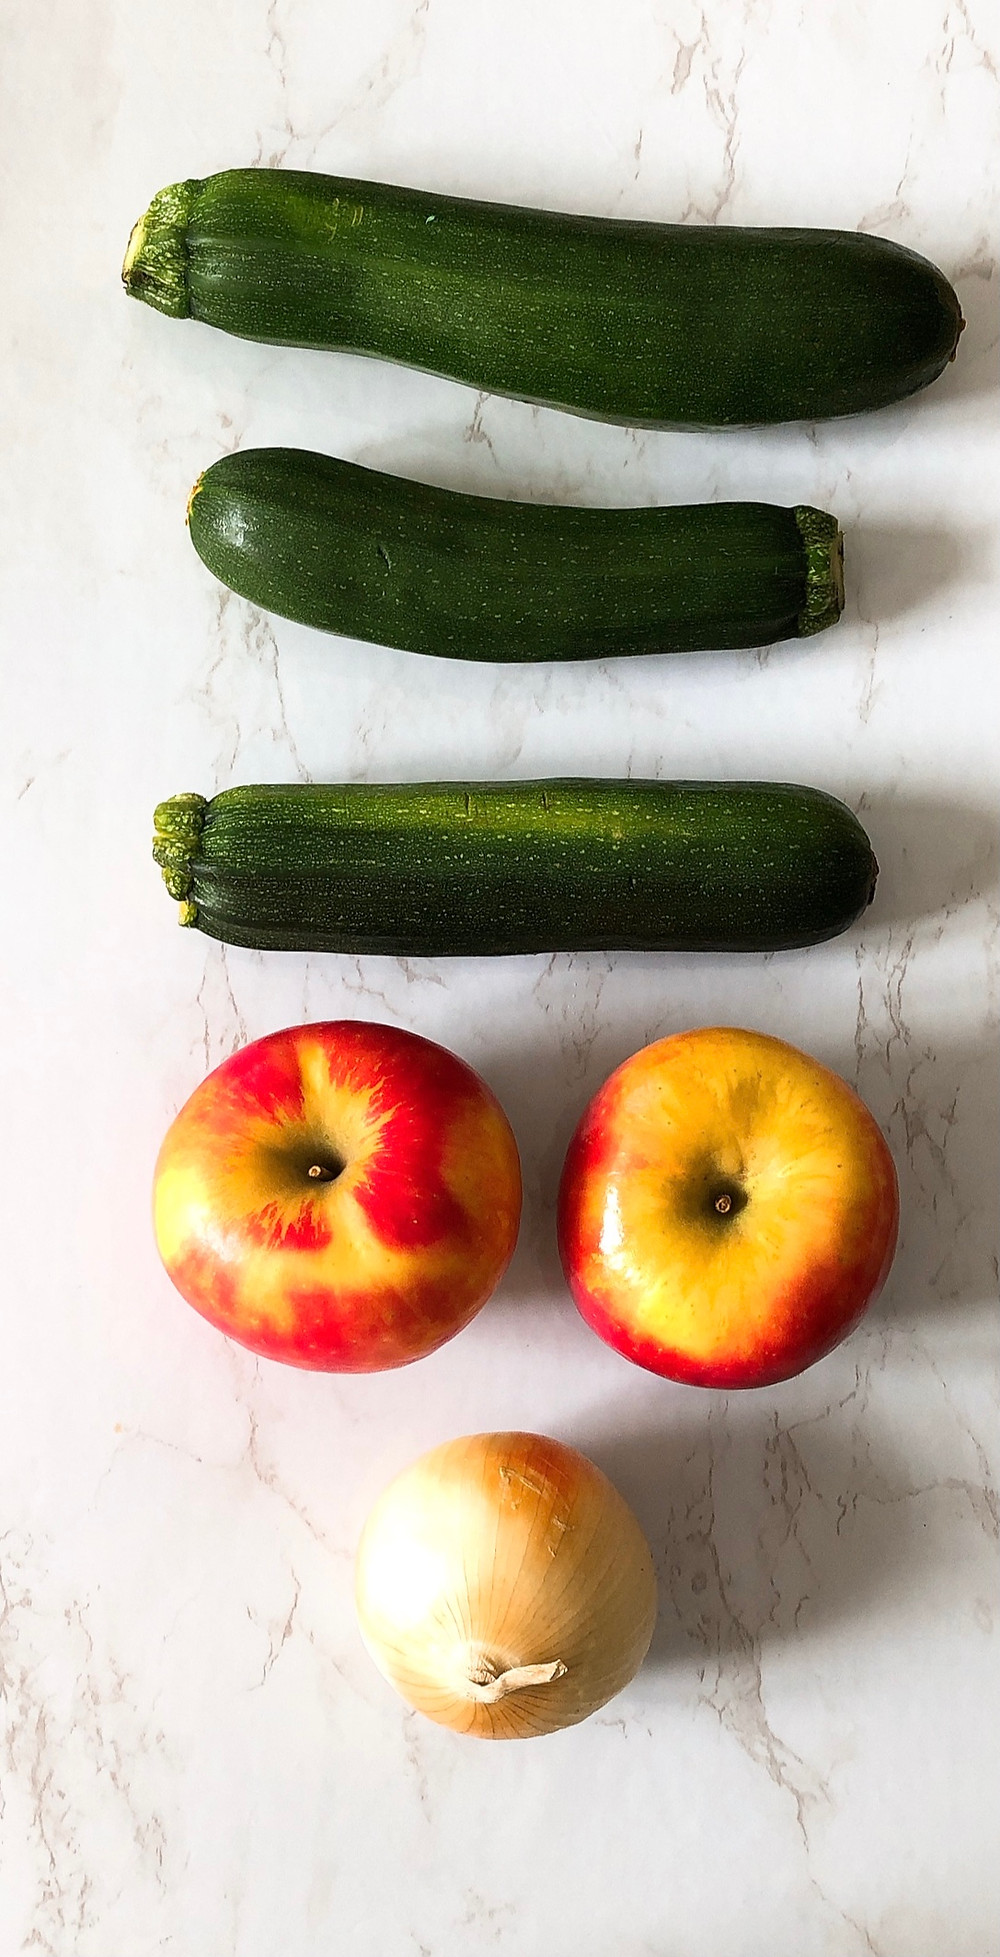 Three green zucchinis, two Honeycrisp apples, and a yellow onion lay on a marble countertop.